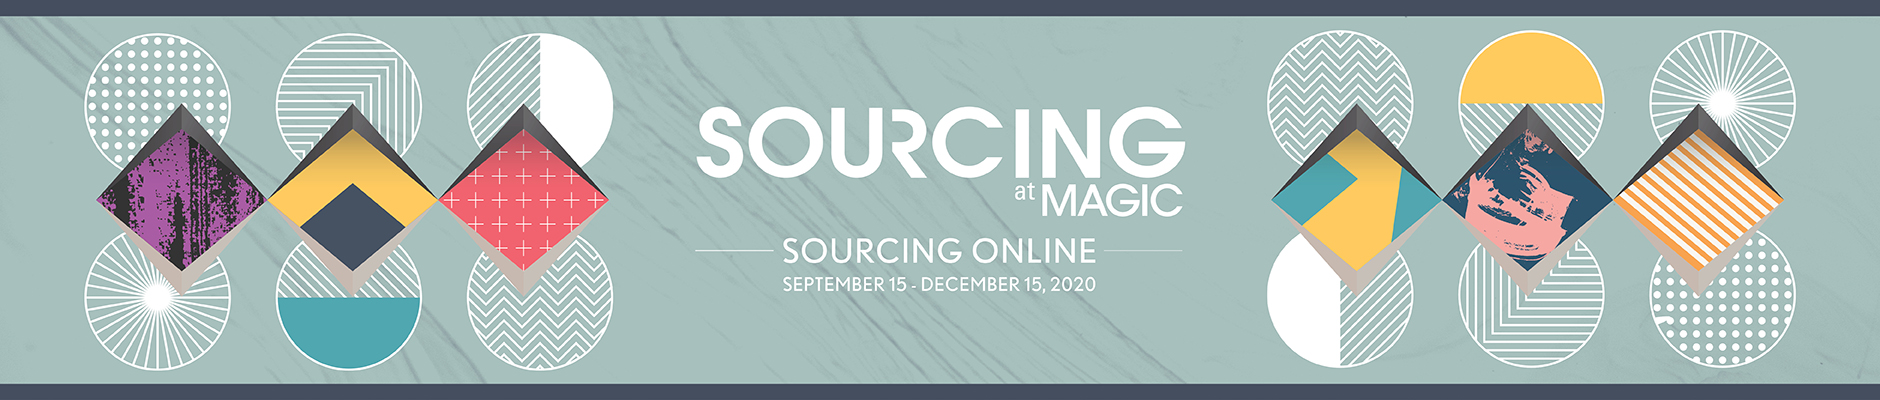 SOURCING AT MAGIC | SOURCING Online